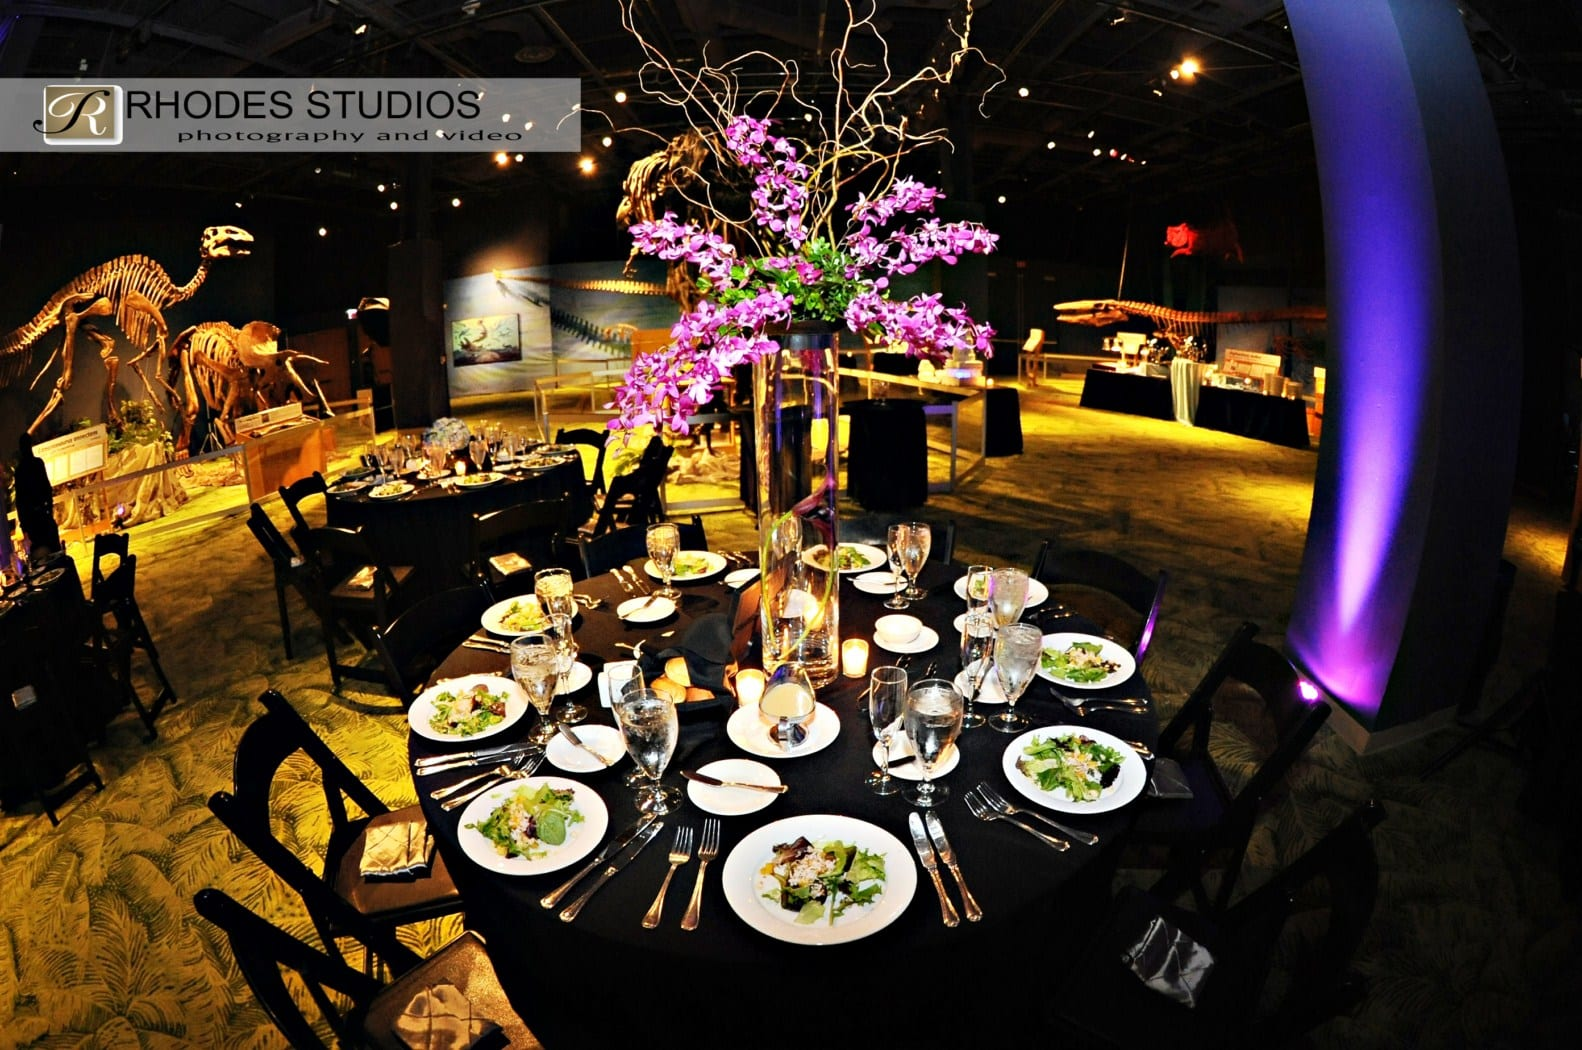 Orlando Wedding Dj Our Rocks Science Center Rhodes Studios